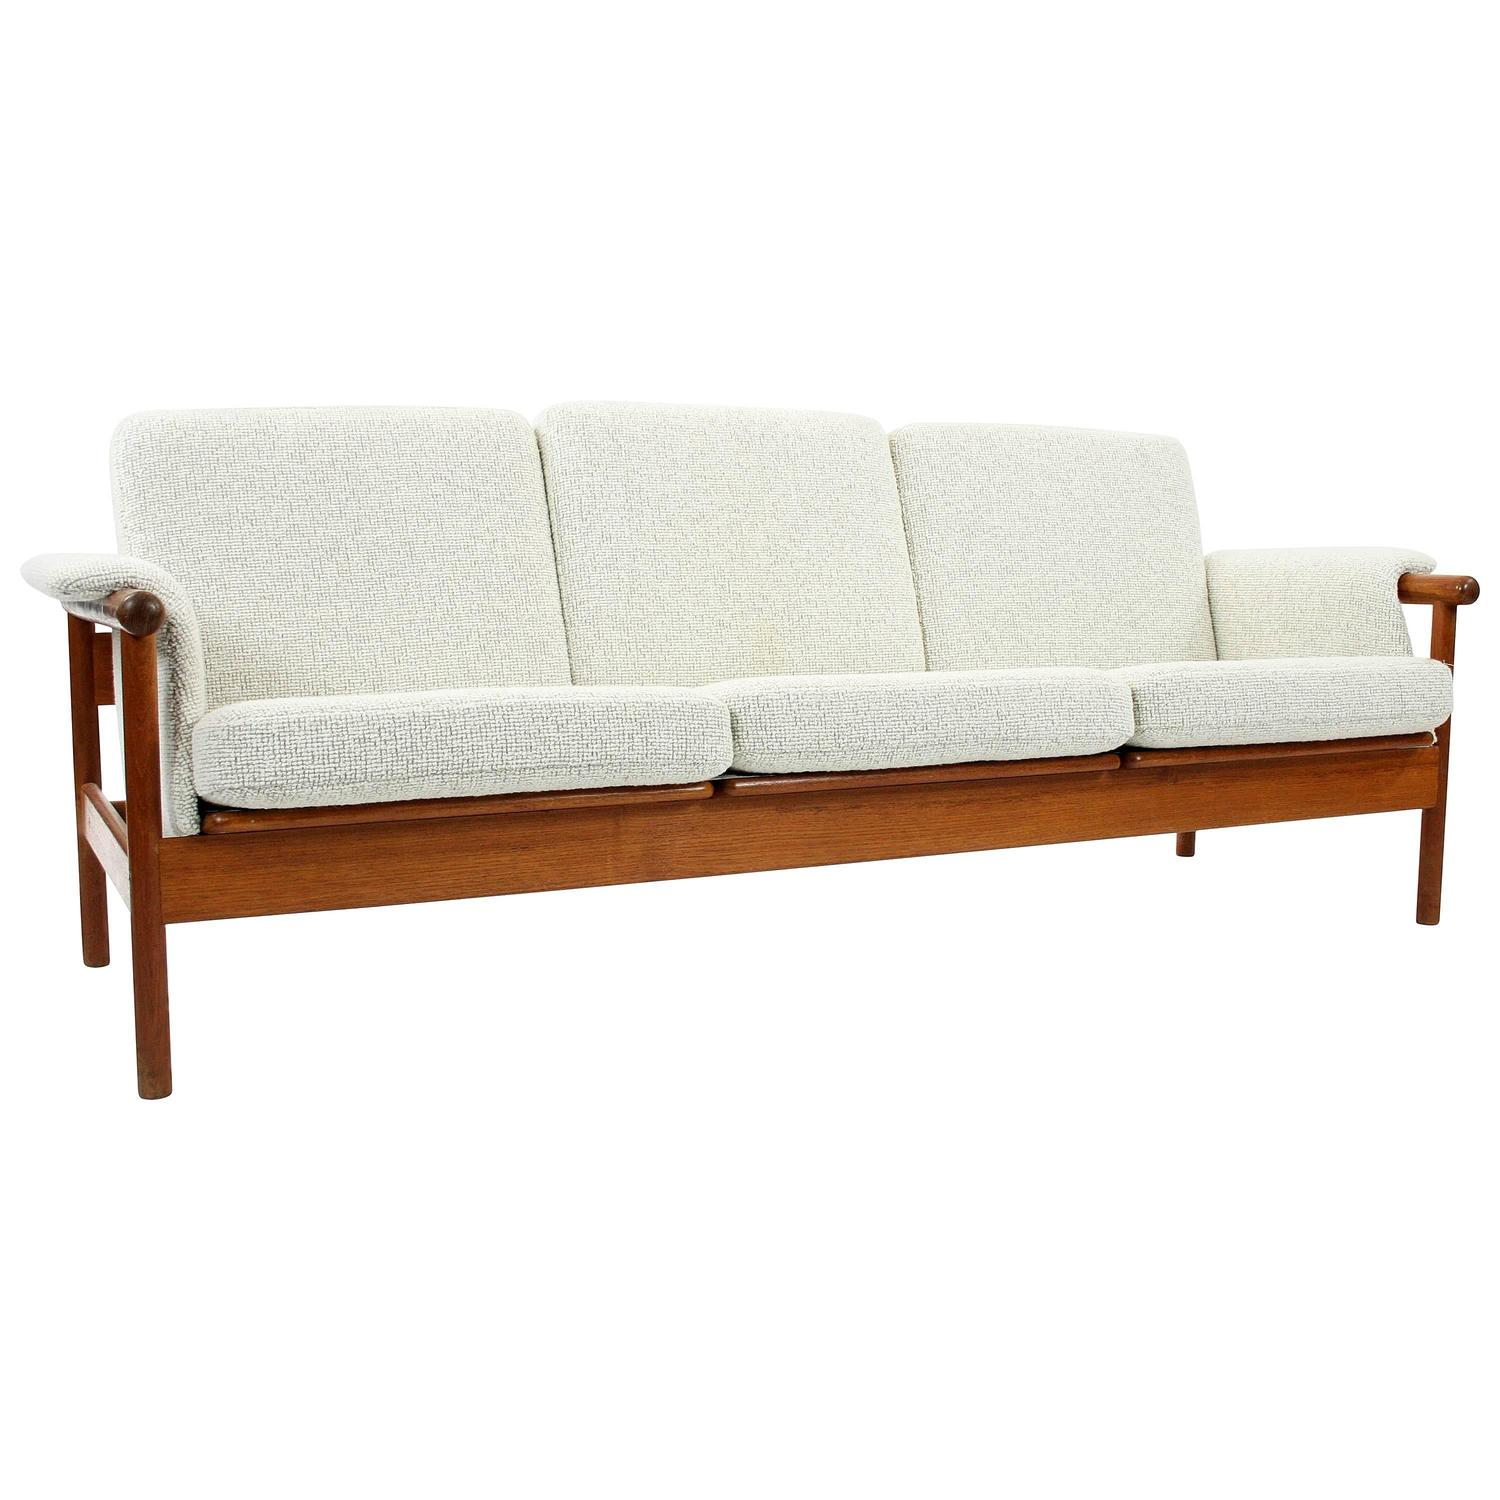 Danish Modern Sectional Sofa Nanna Ditzel Style Four Seat